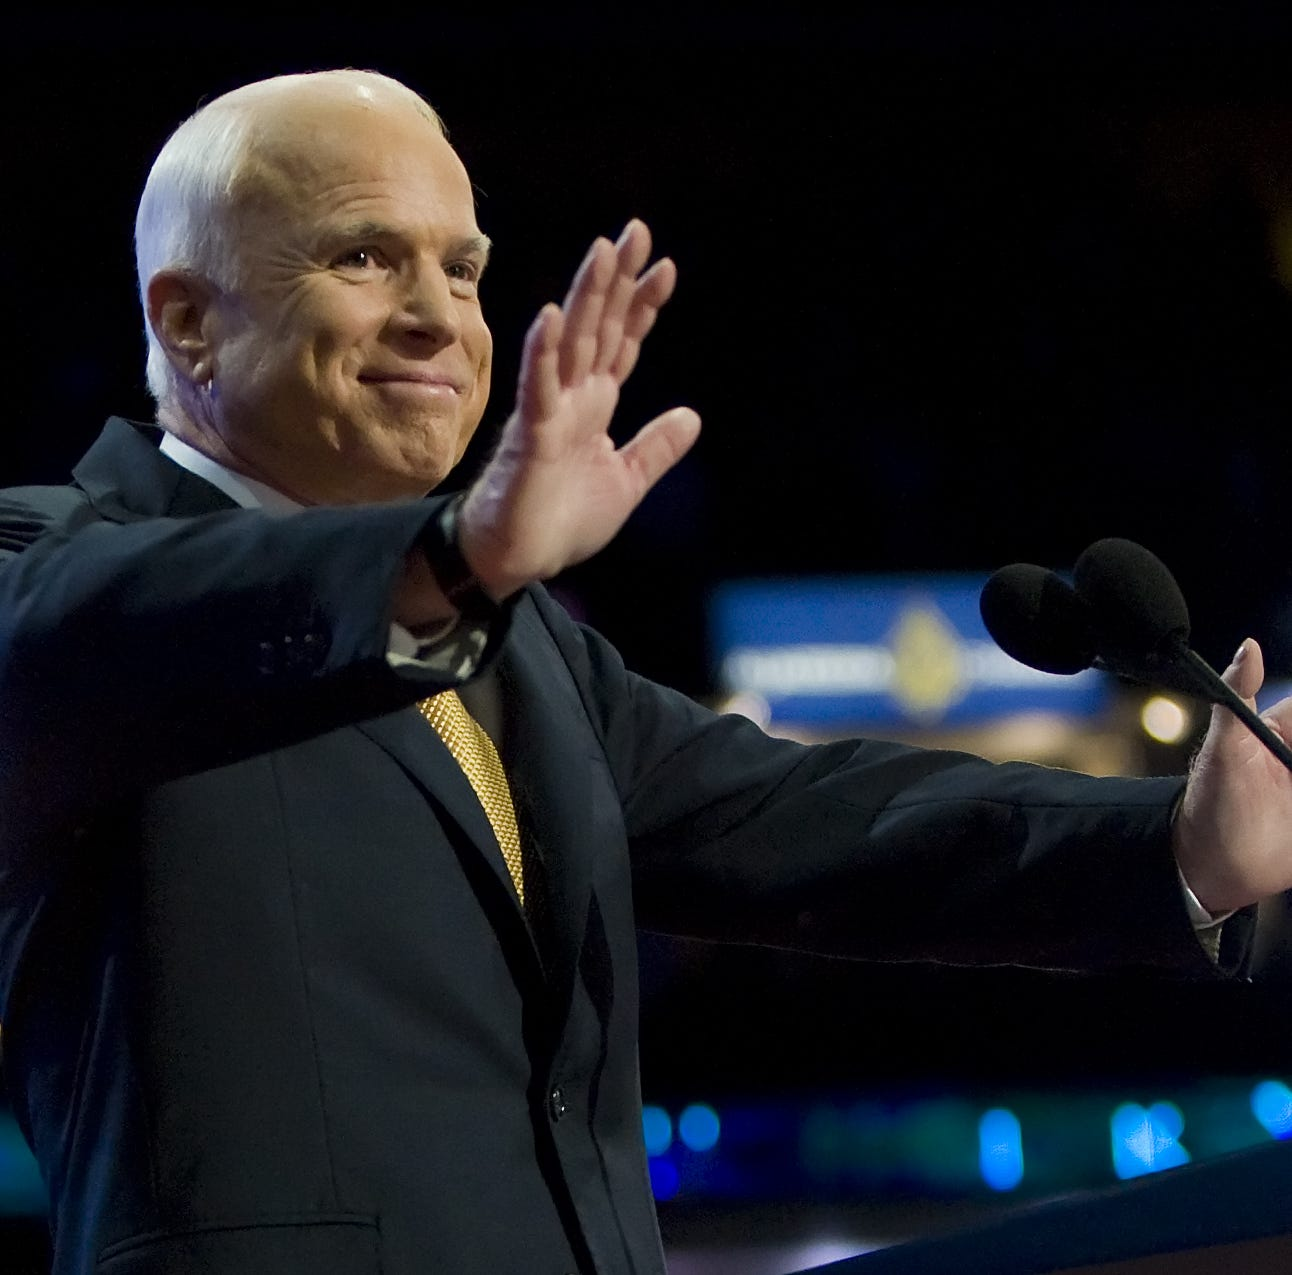 Sen. Martha McSally: John McCain and his family should be respected